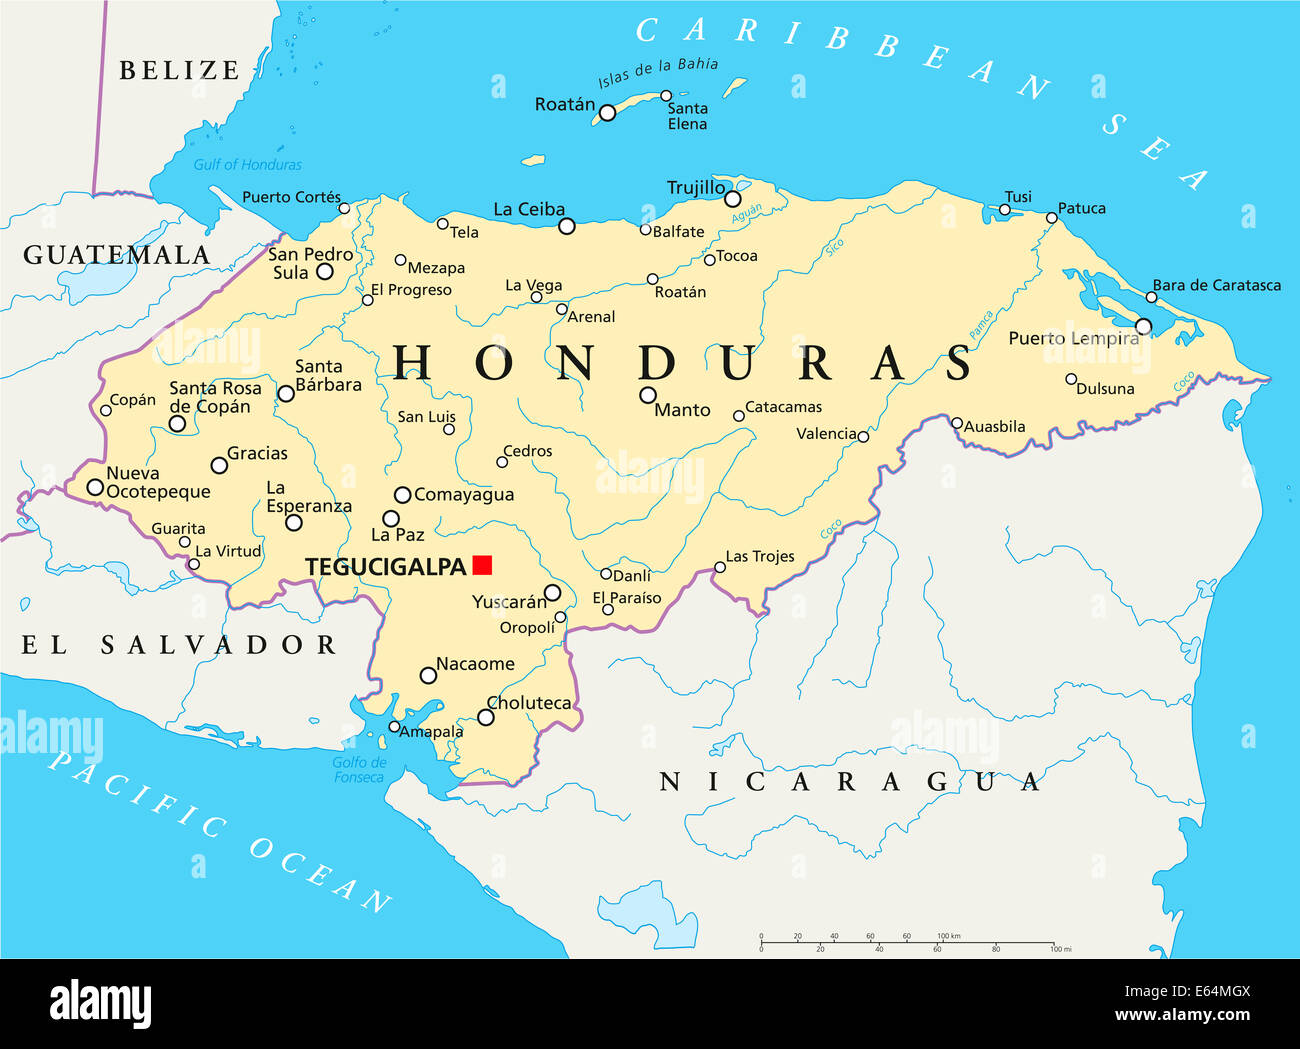 Honduras Political Map With Capital Tegucigalpa, National Borders, Most  Important Cities, Rivers And